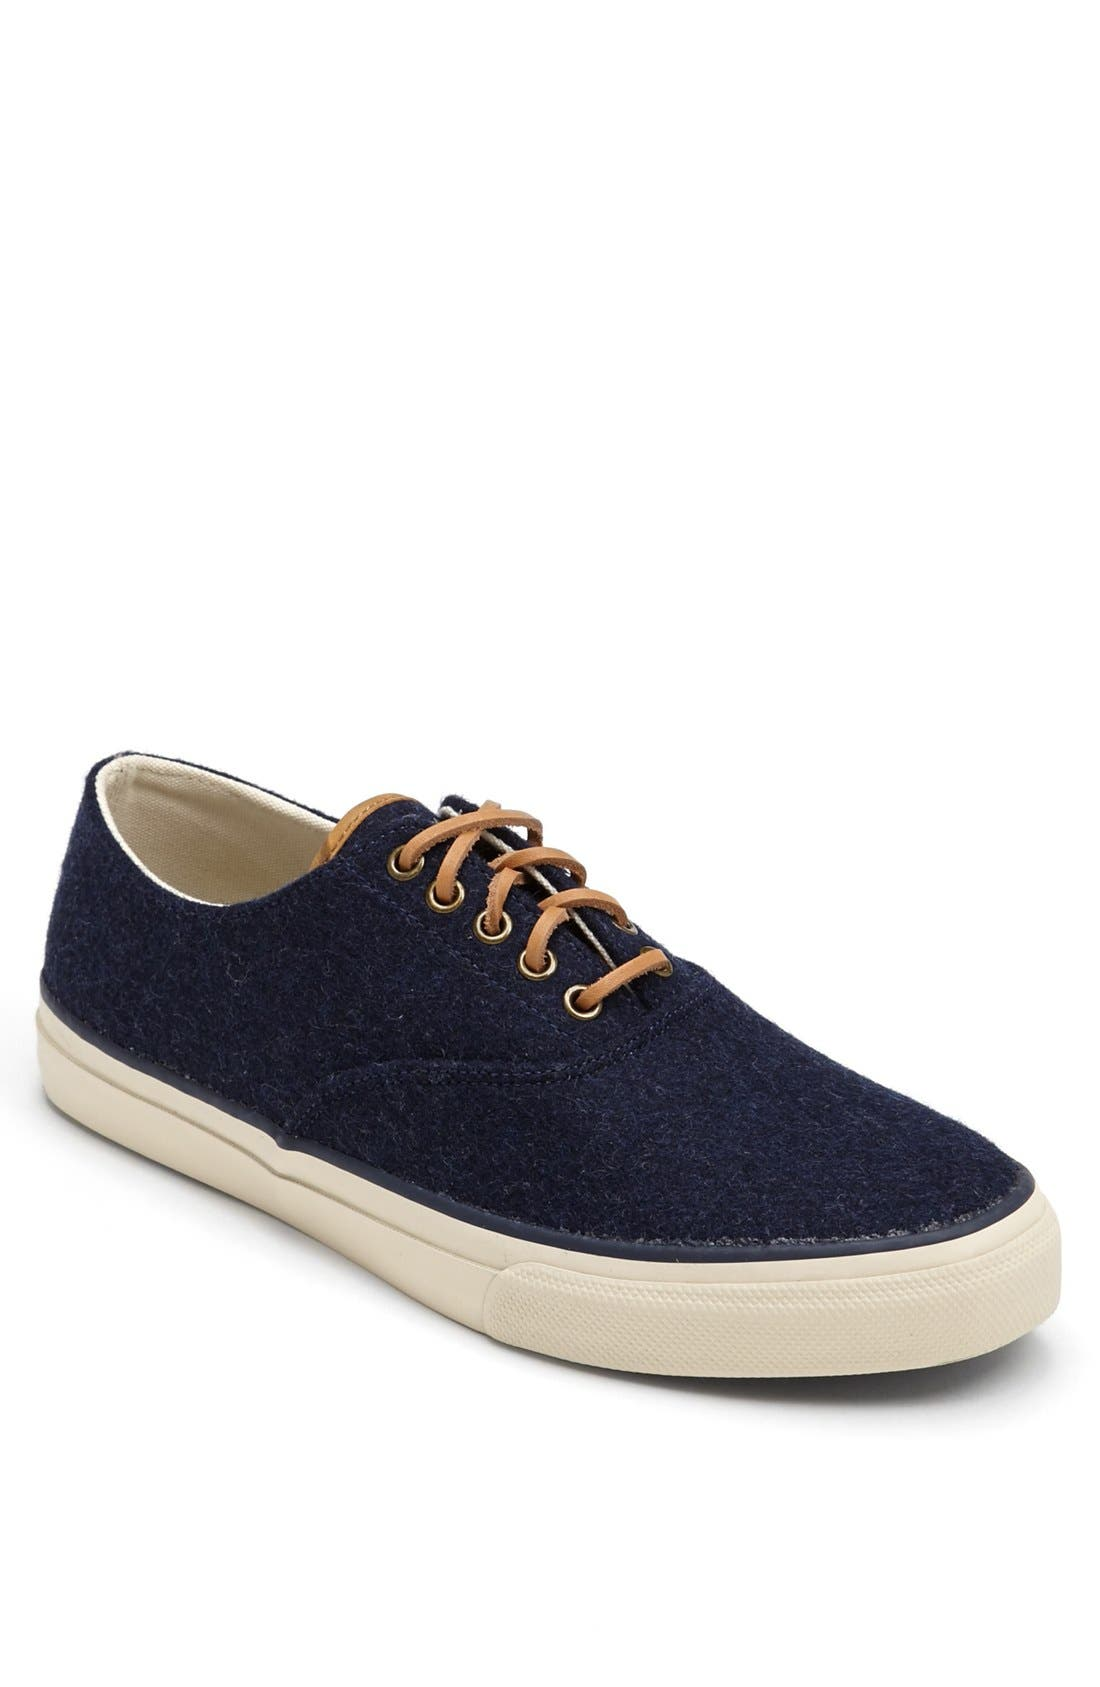 Alternate Image 1 Selected - Sperry Top-Sider® 'American Originals - CVO' Sneaker